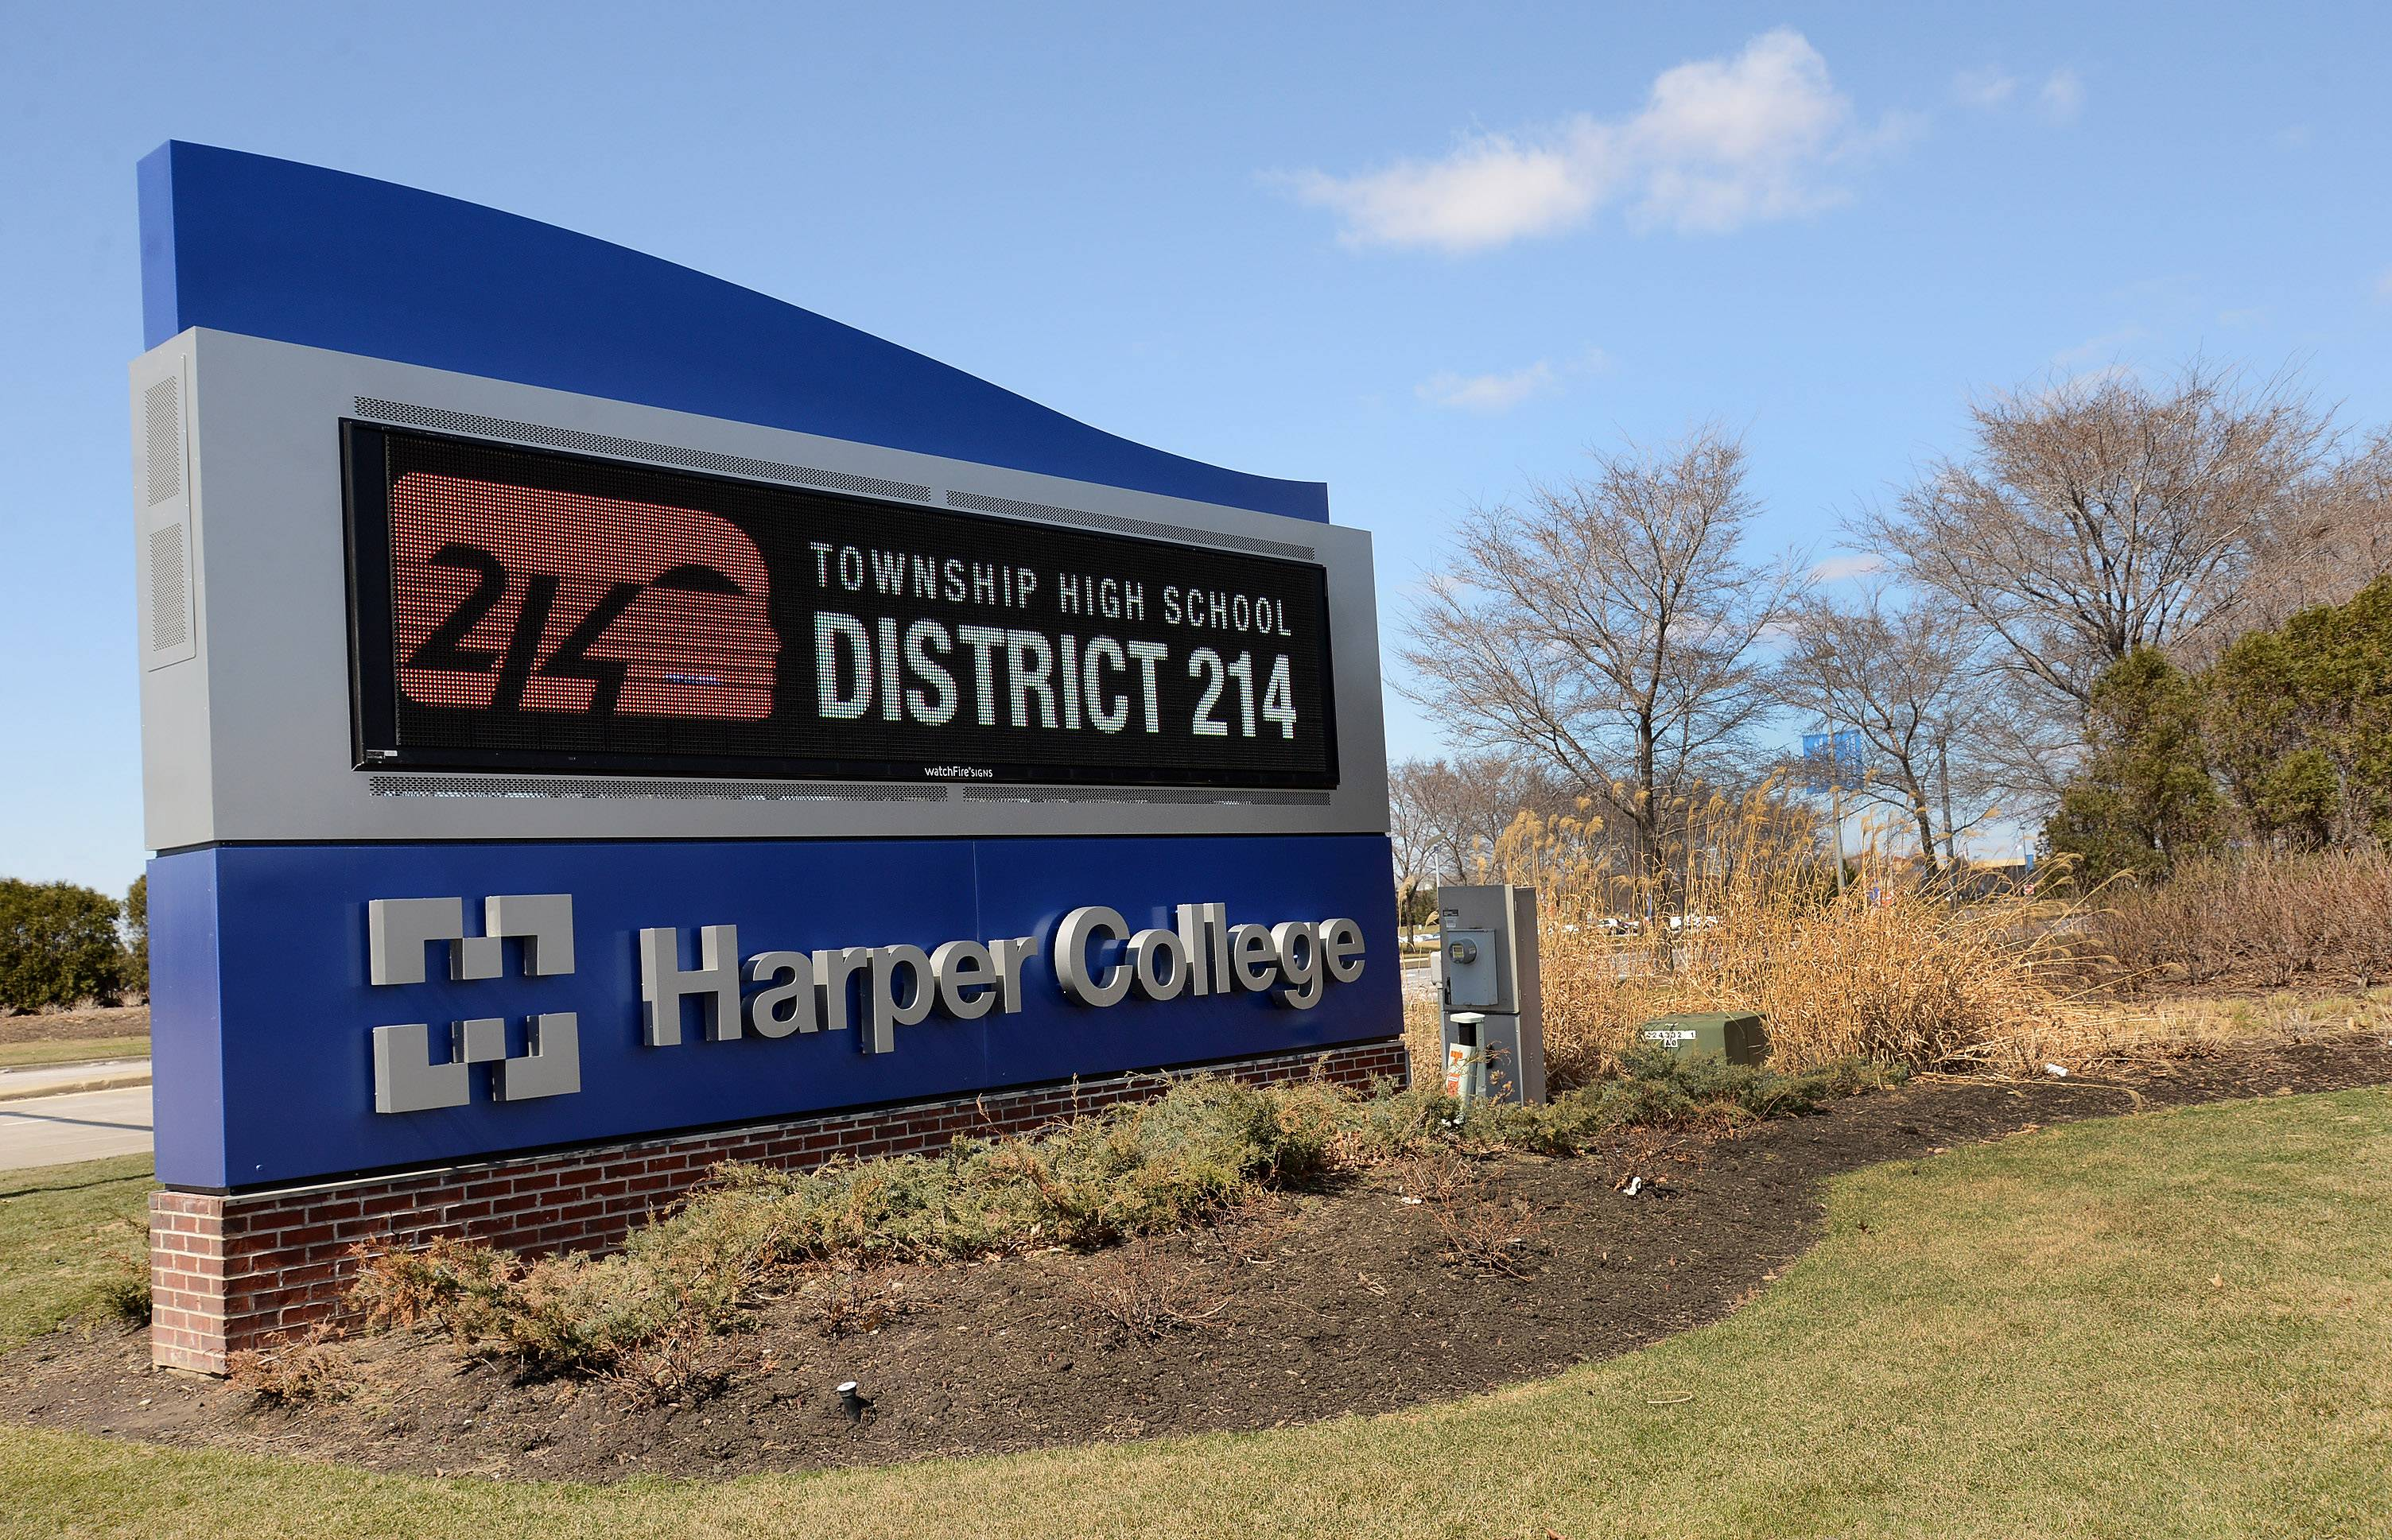 Make the grade, volunteer and avoid skipping class, and Northwest suburban high school students in the class of 2019 will receive free tuition at Harper College.